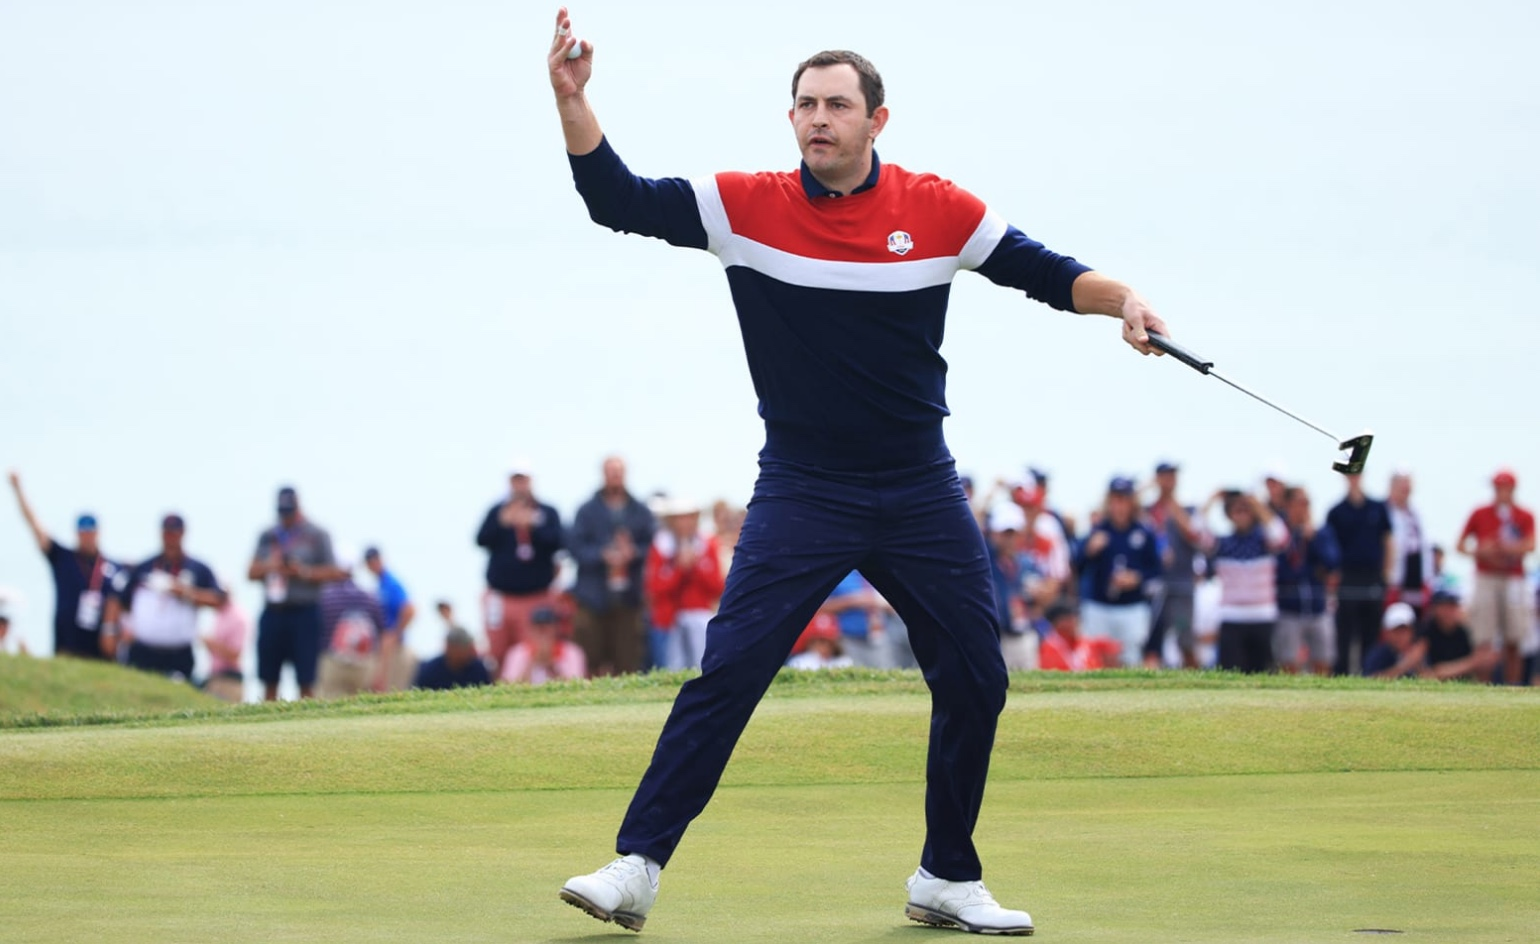 New USA golf era sends message in epic Ryder Cup romp